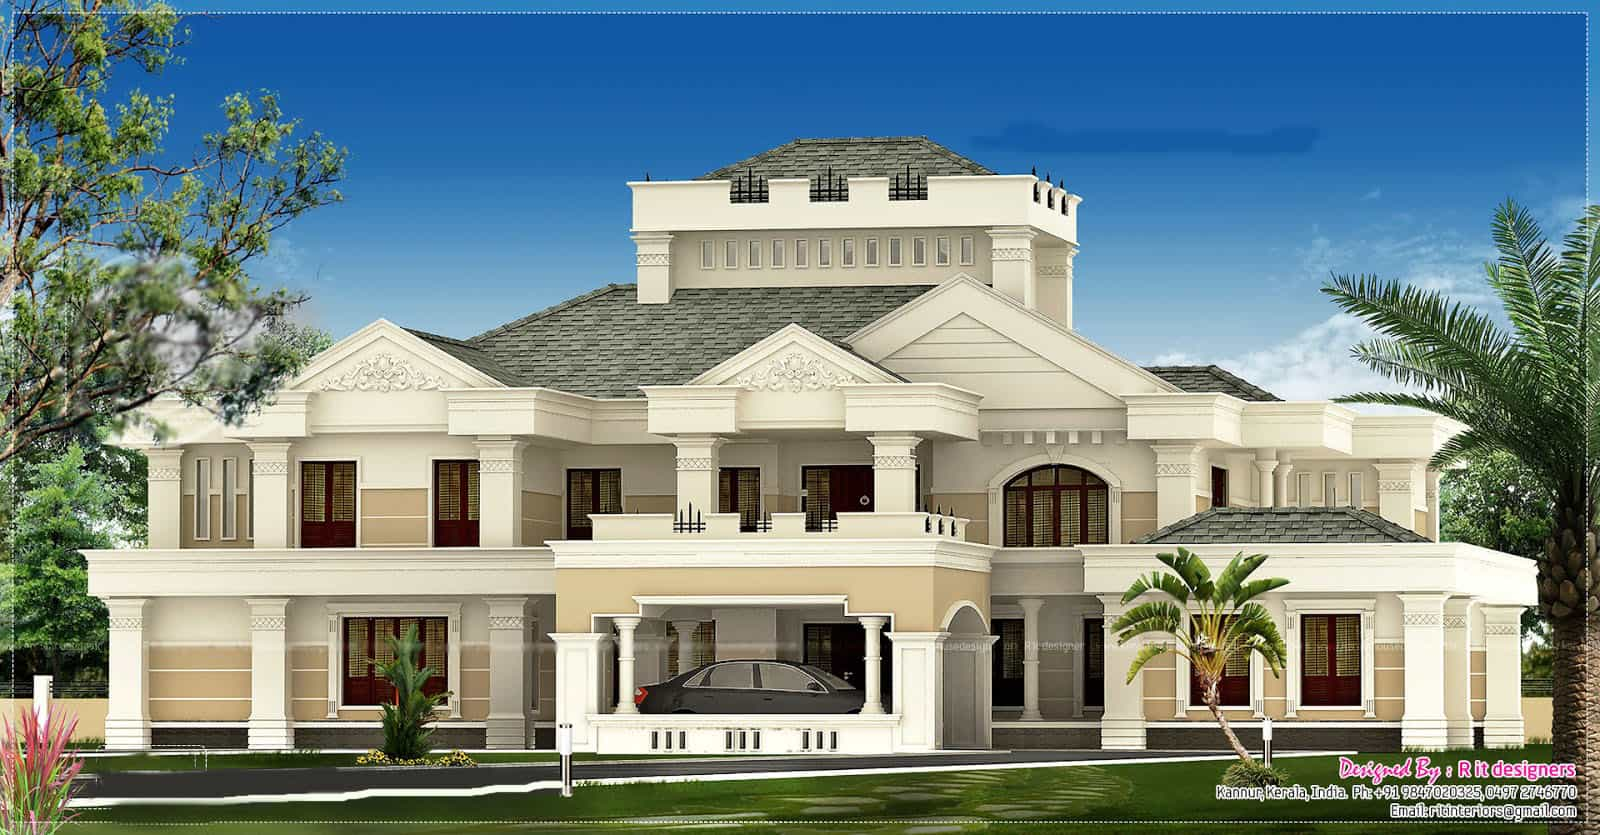 small vacation home house plans sq foot bedroom house plans small house plans small vacation home plans vacation home plans small